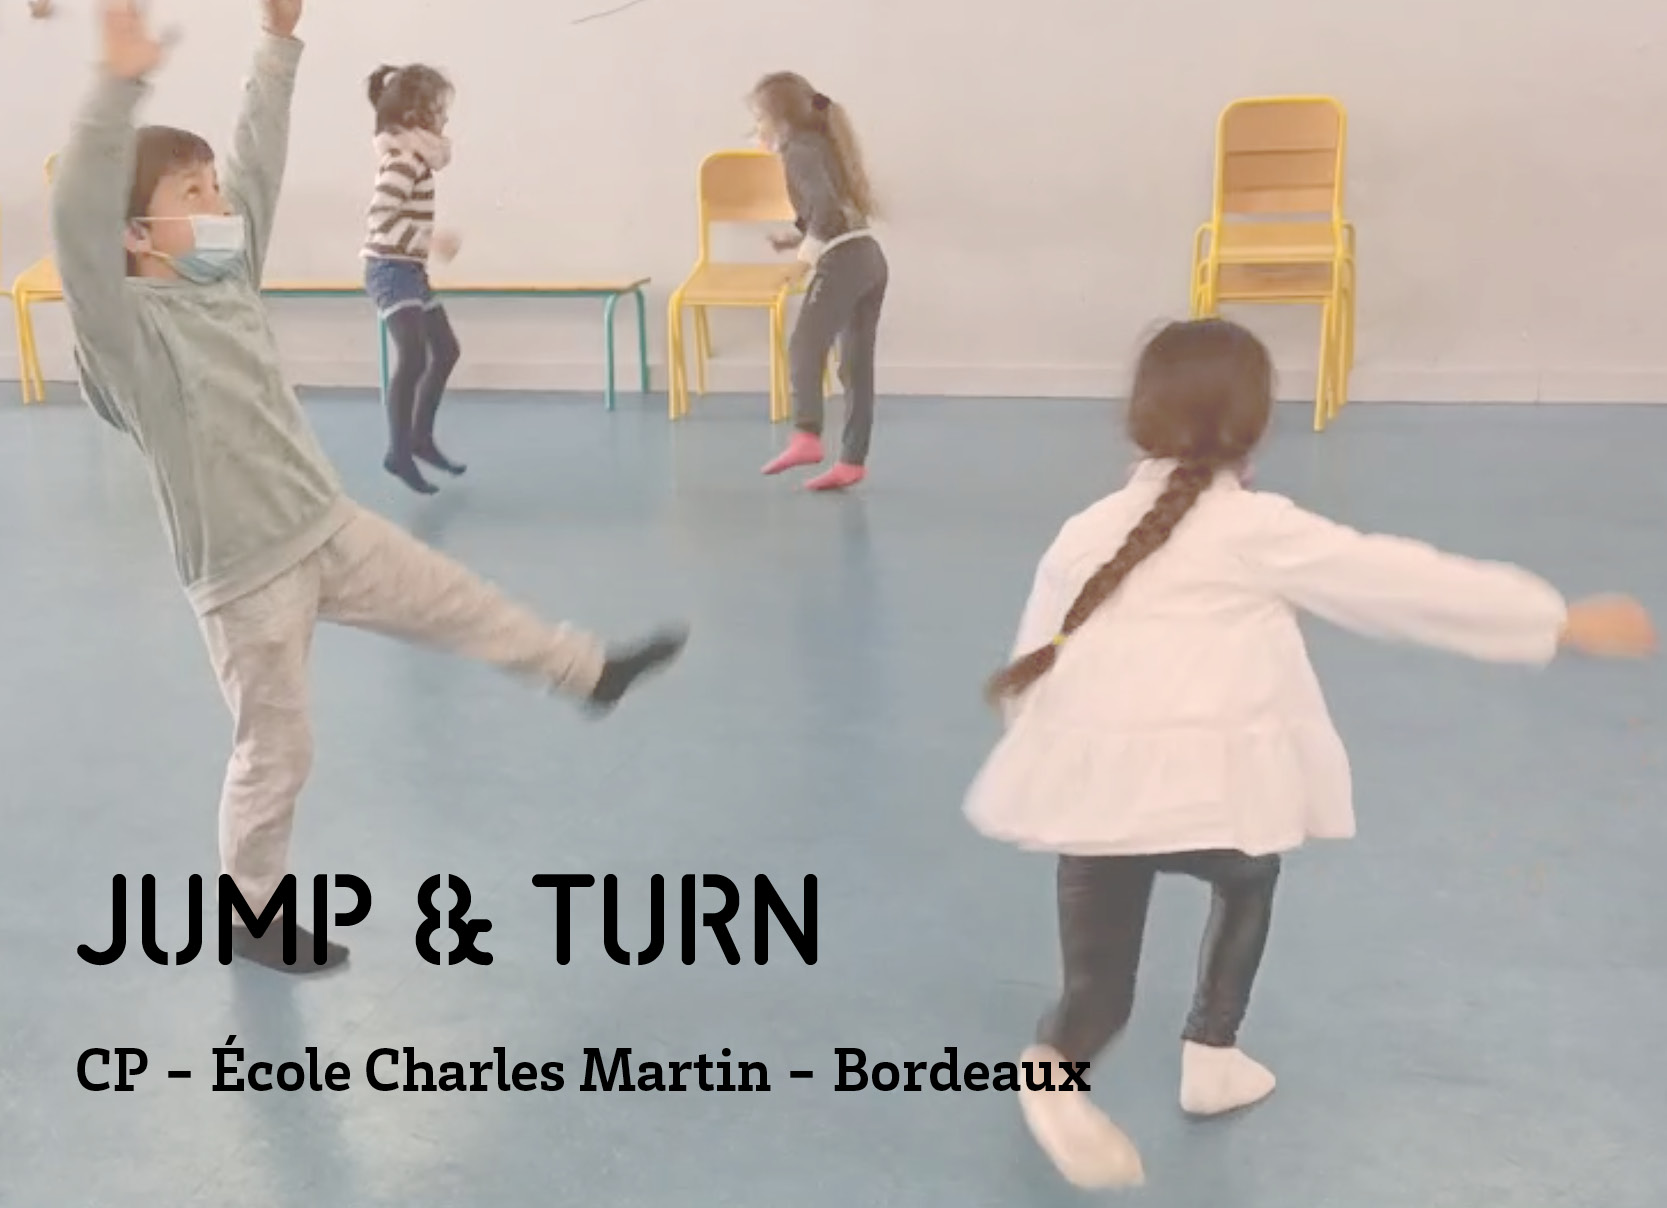 CP ecole Charles Martin Bordeaux